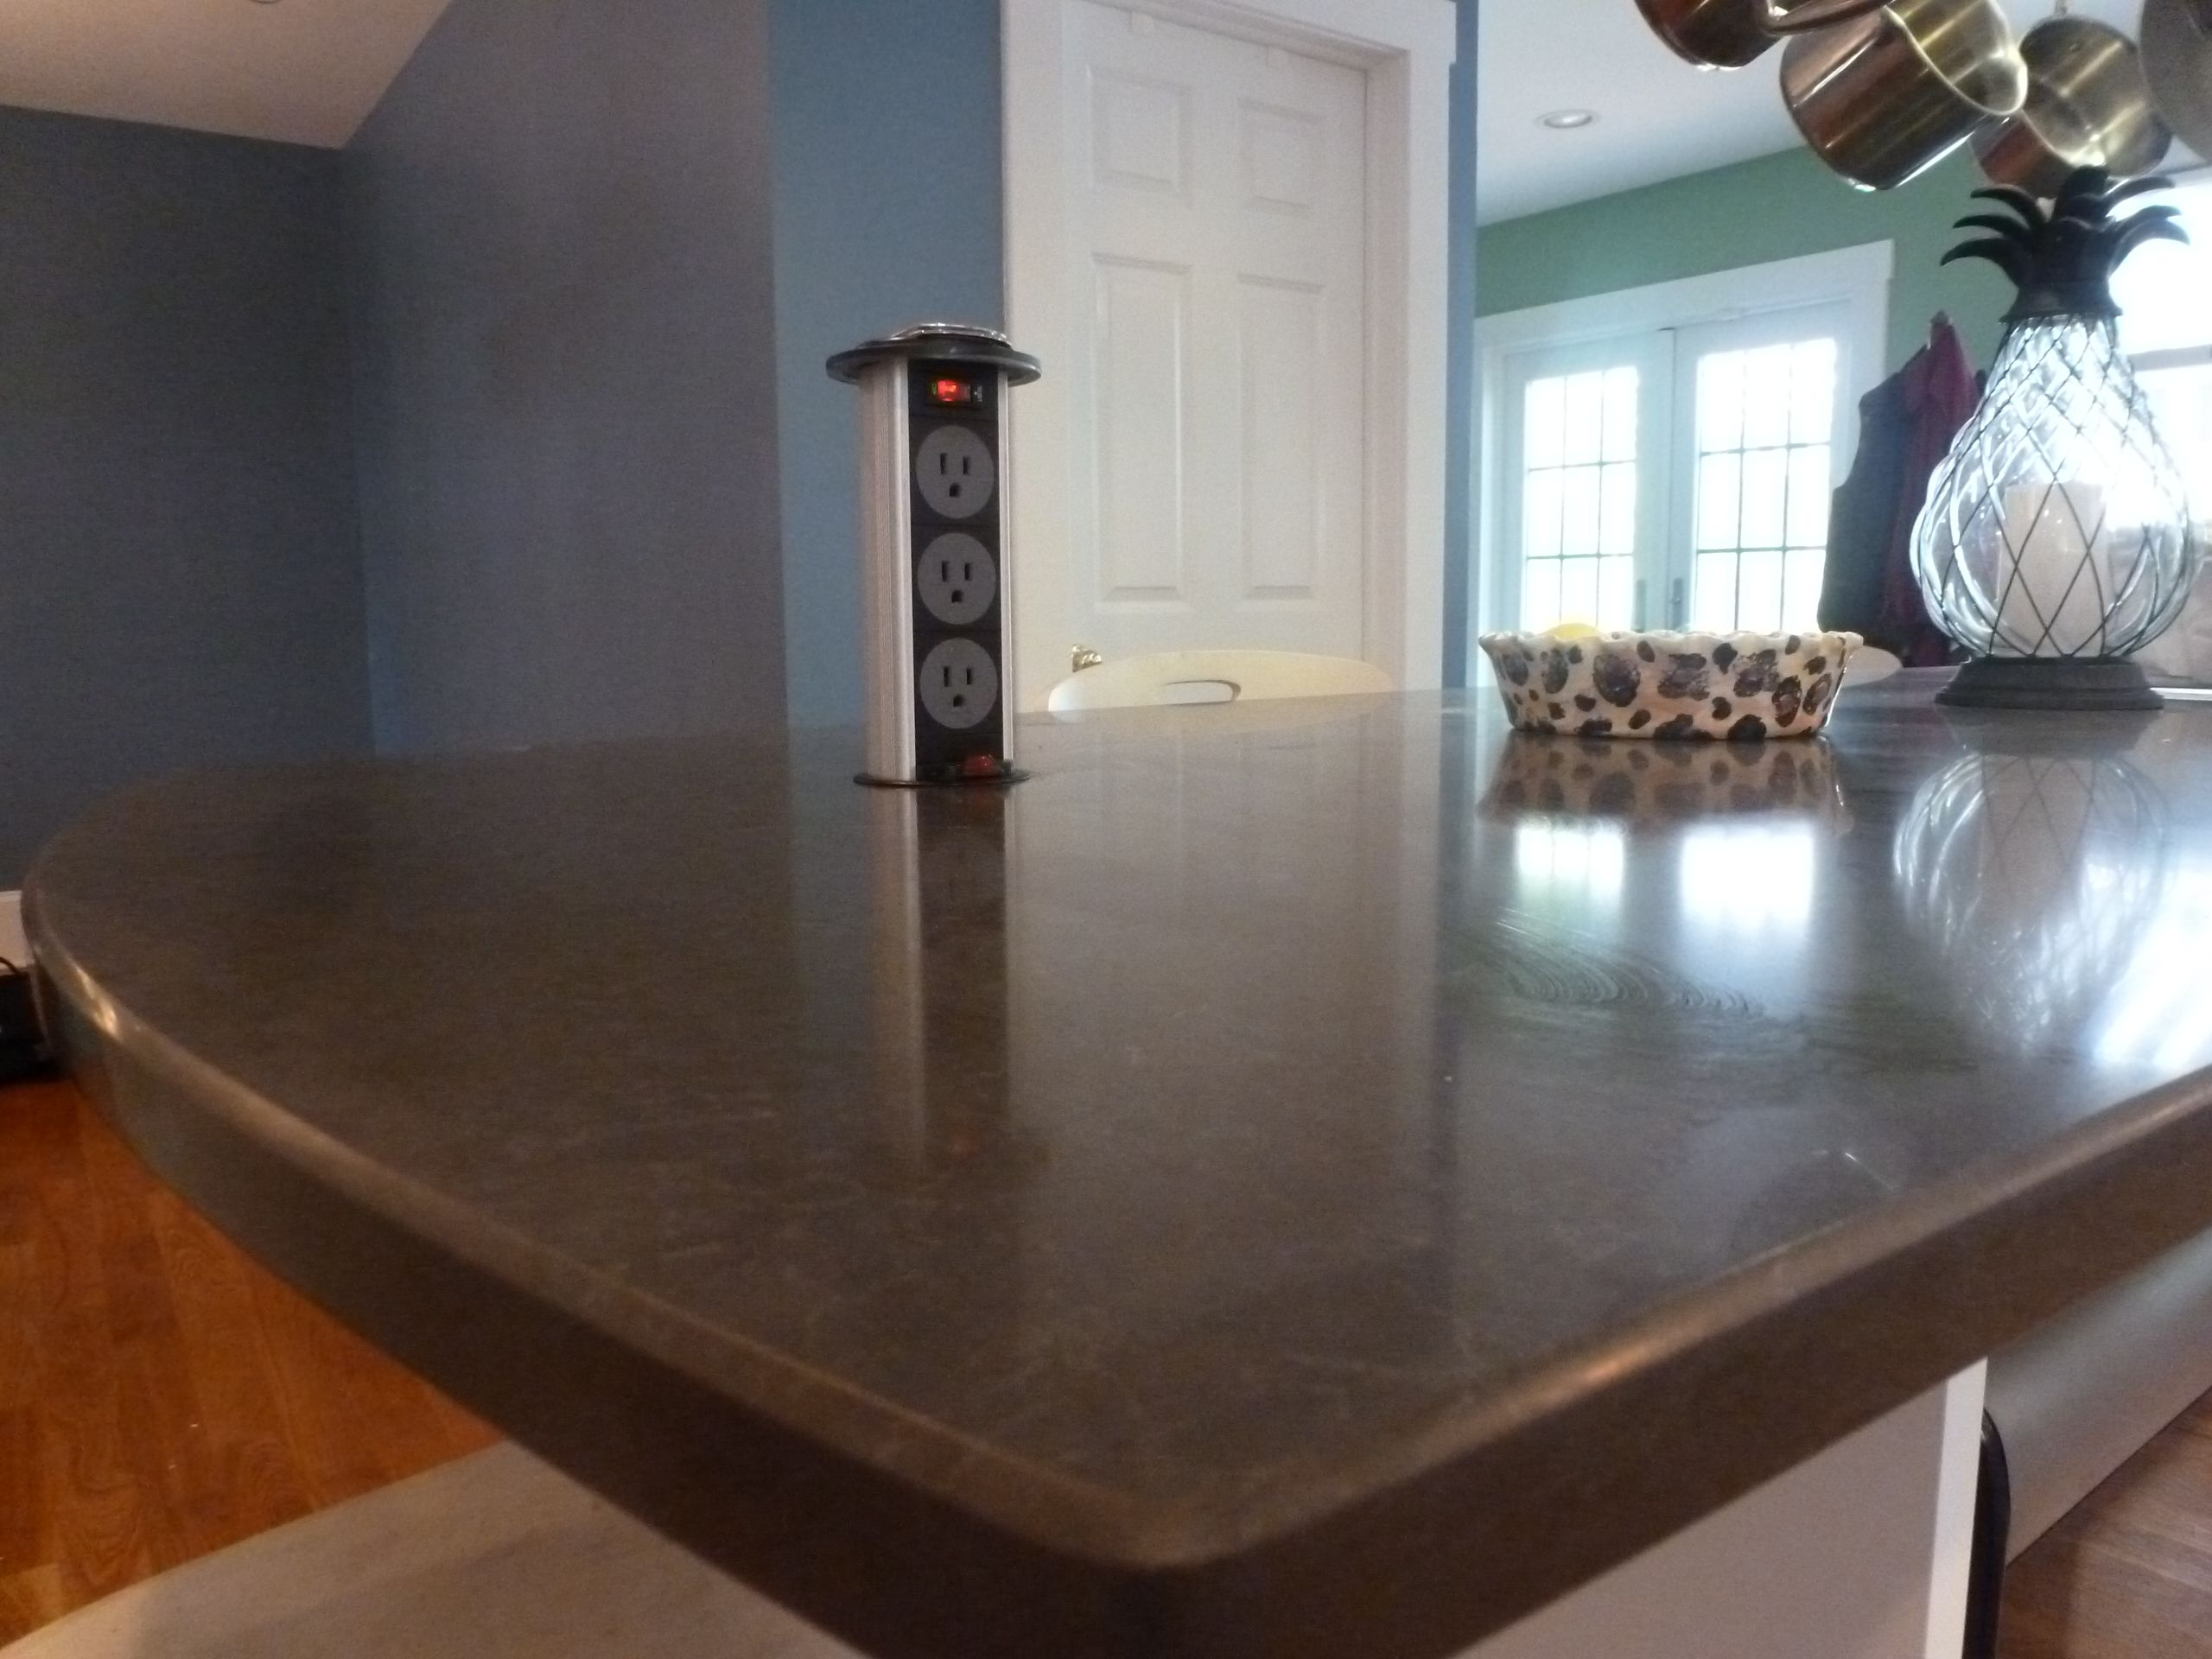 The Power Grommet Recesses Into The Countertop With Images